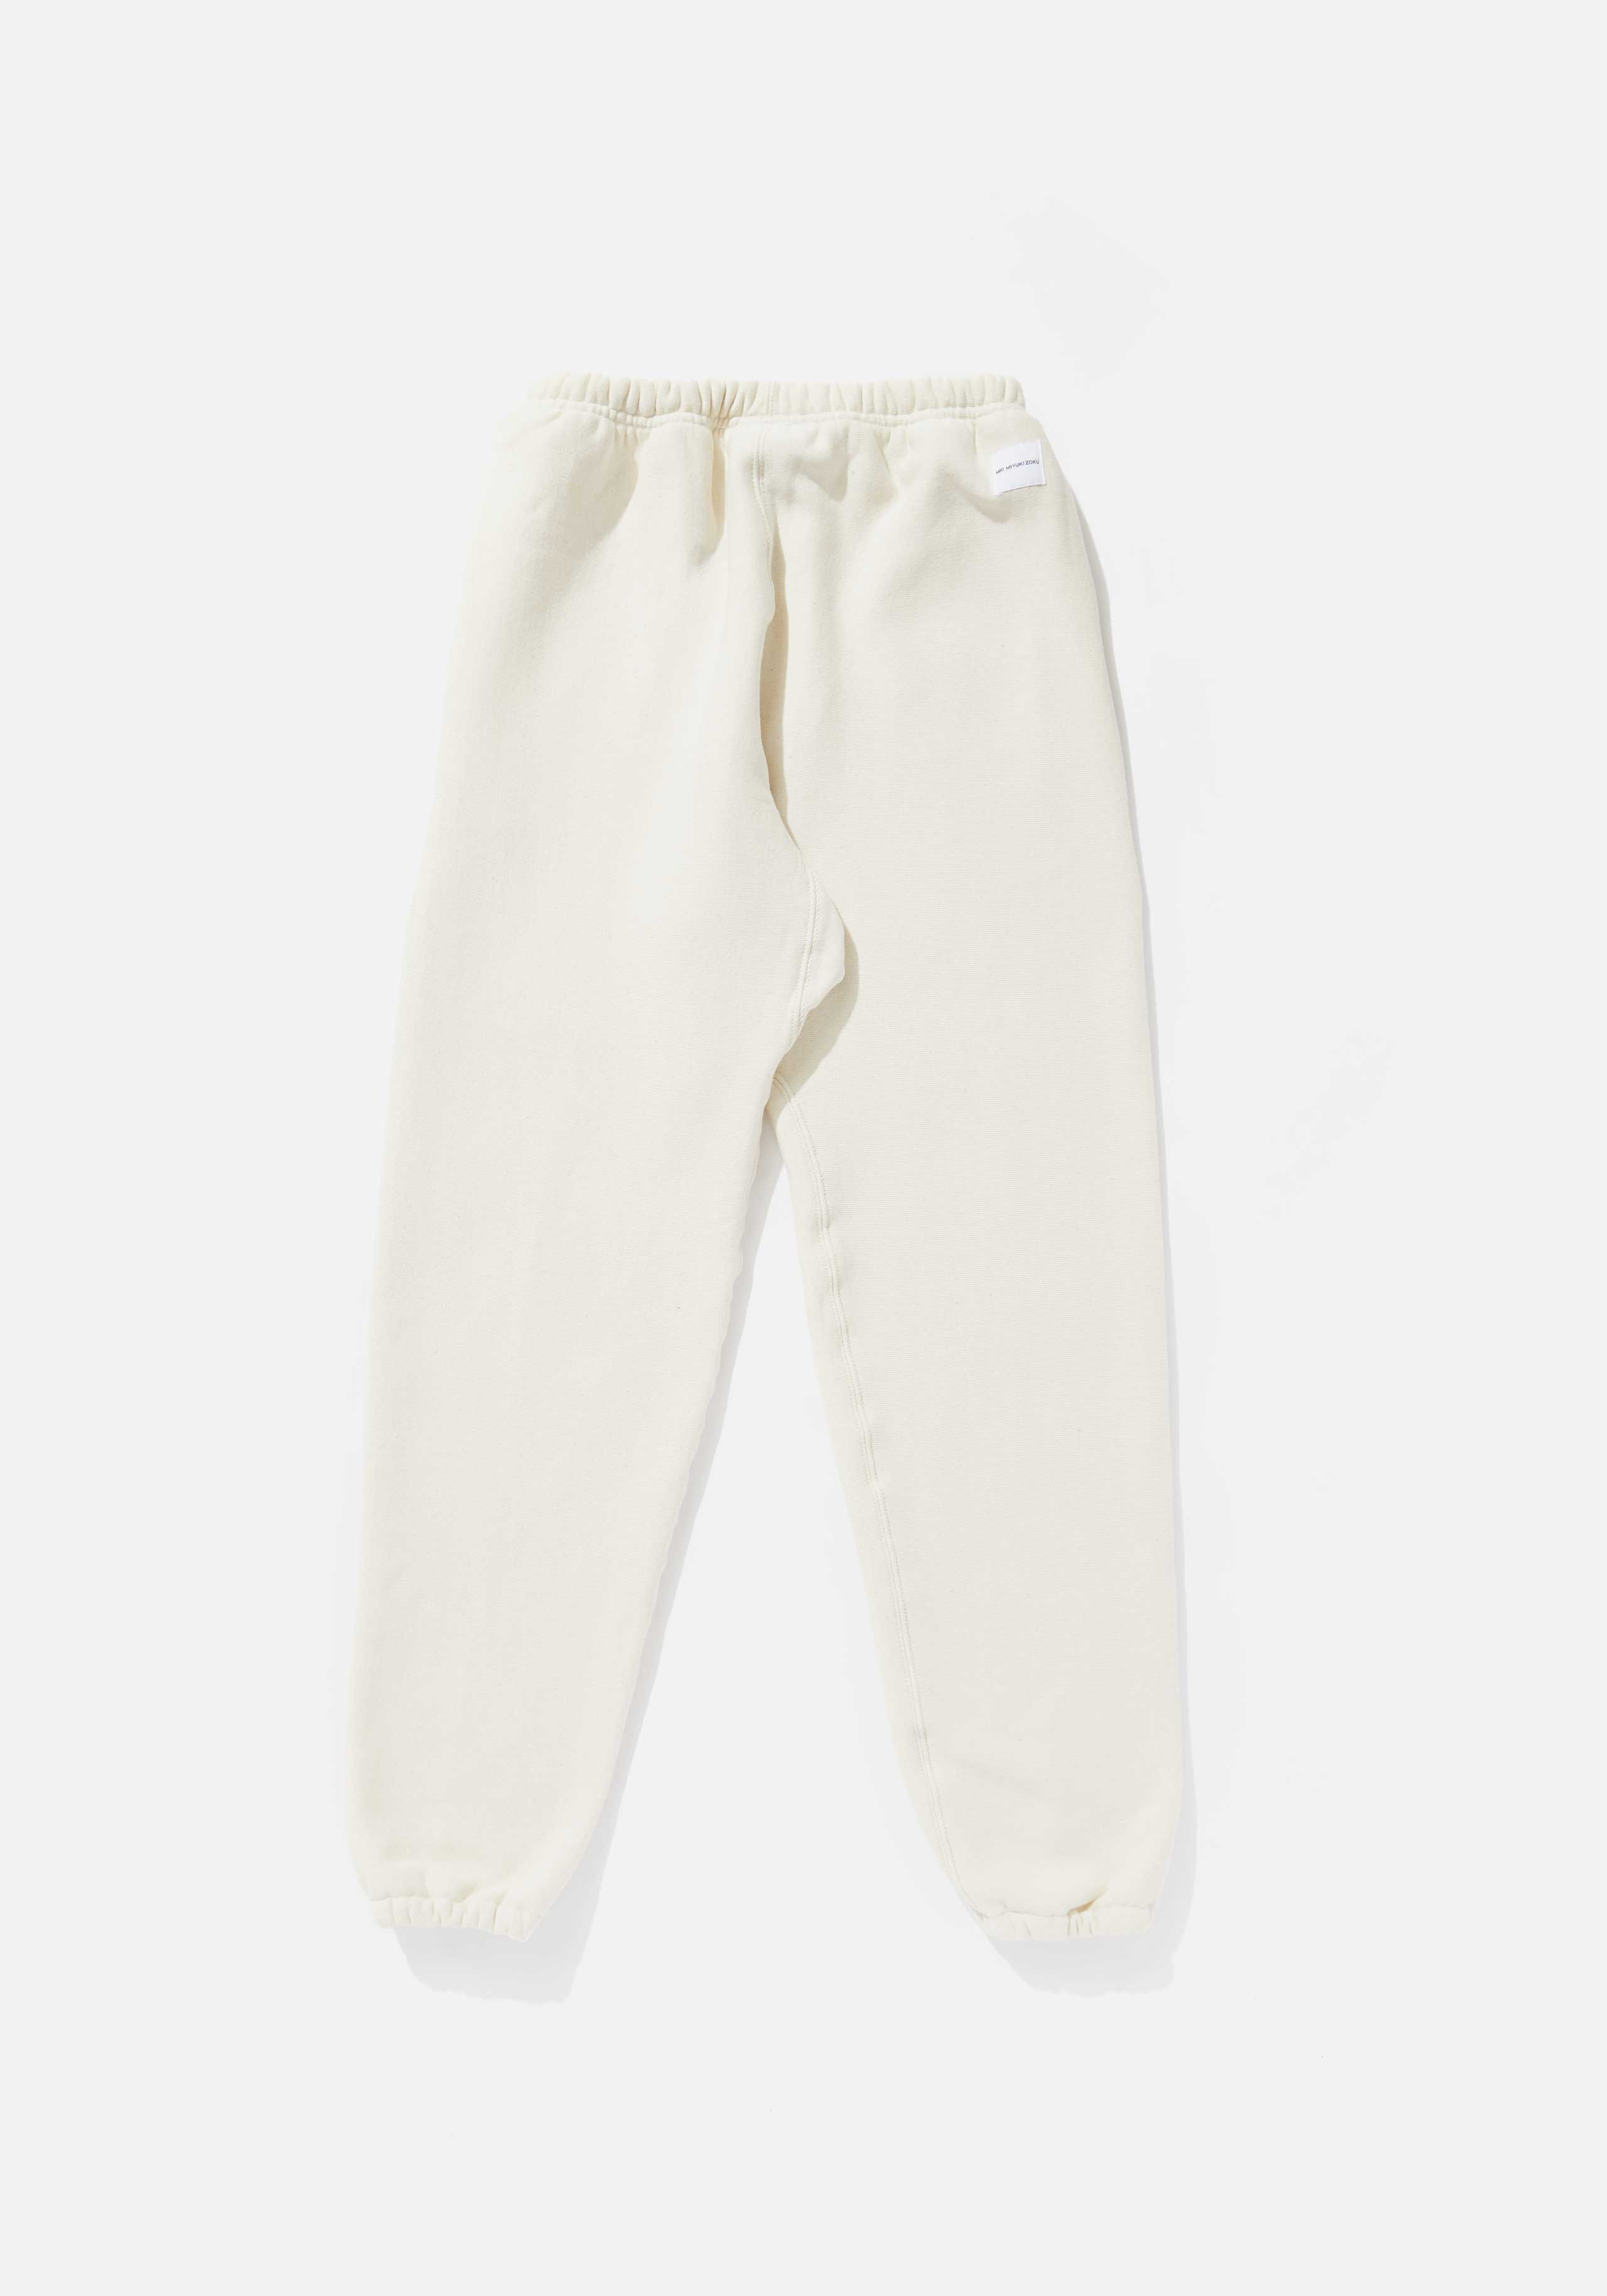 mki 12oz track pant made in usa 2